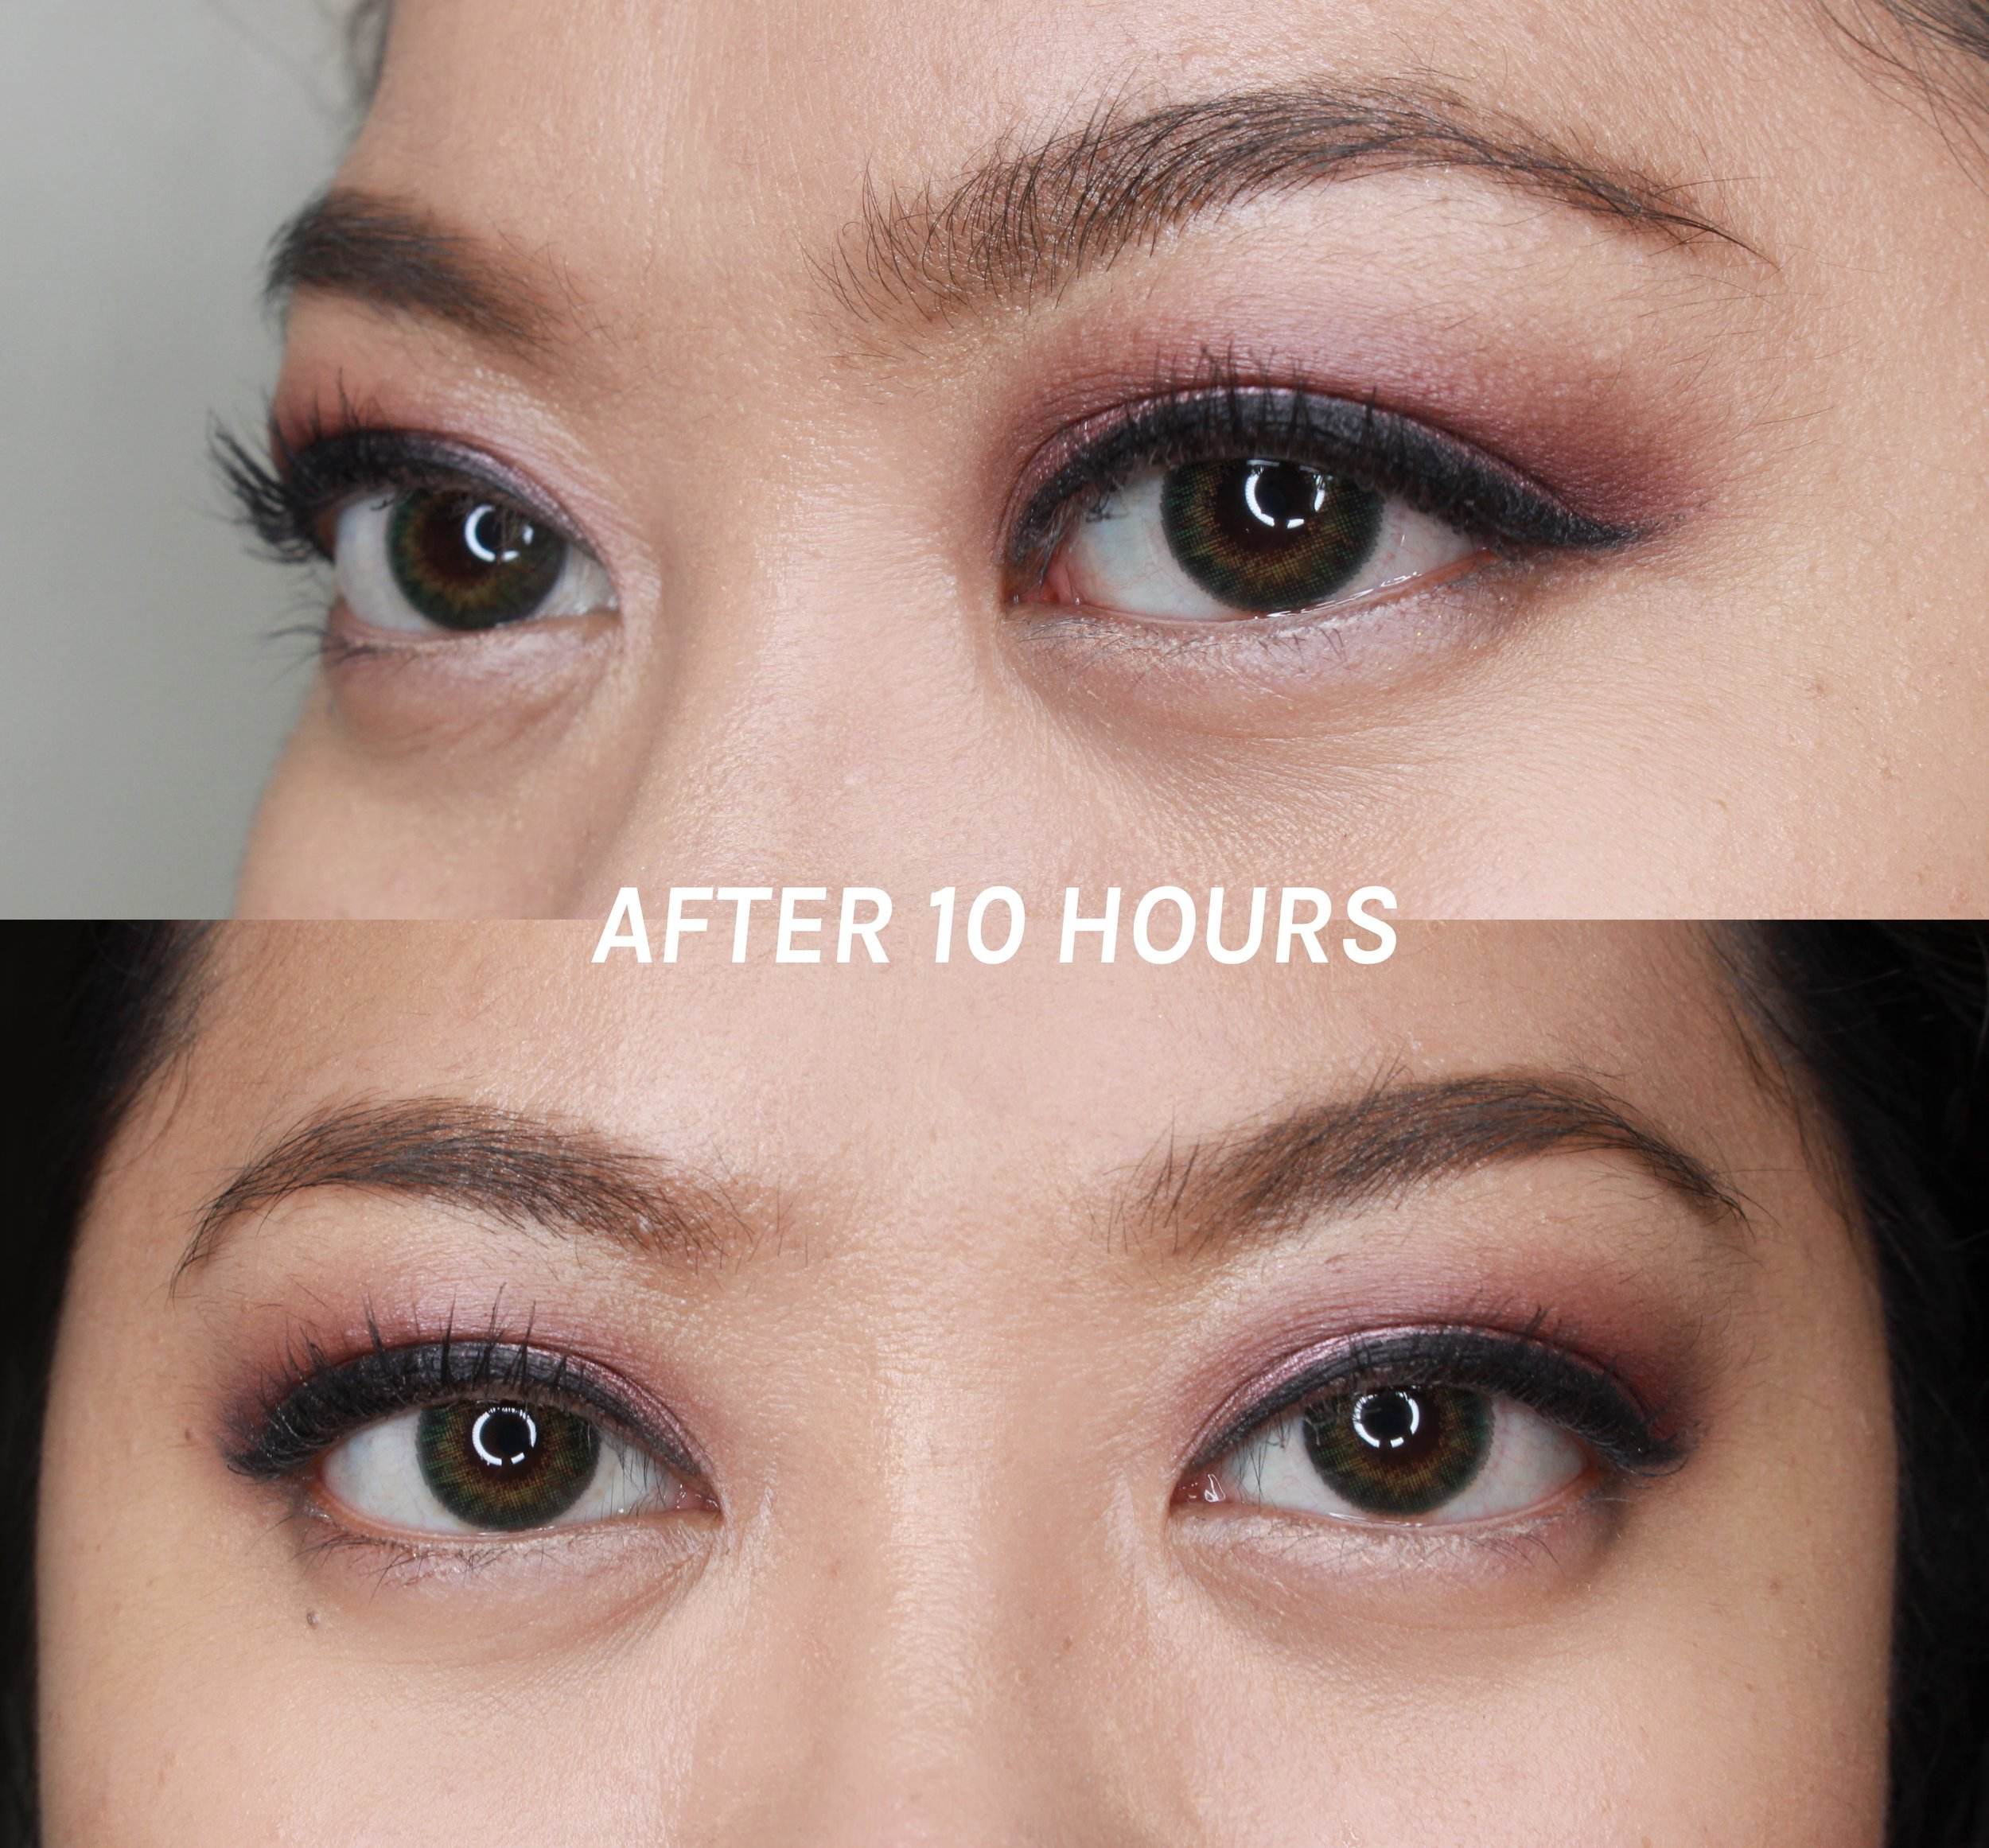 Both photos show what the eyeliner looks like after ten hours